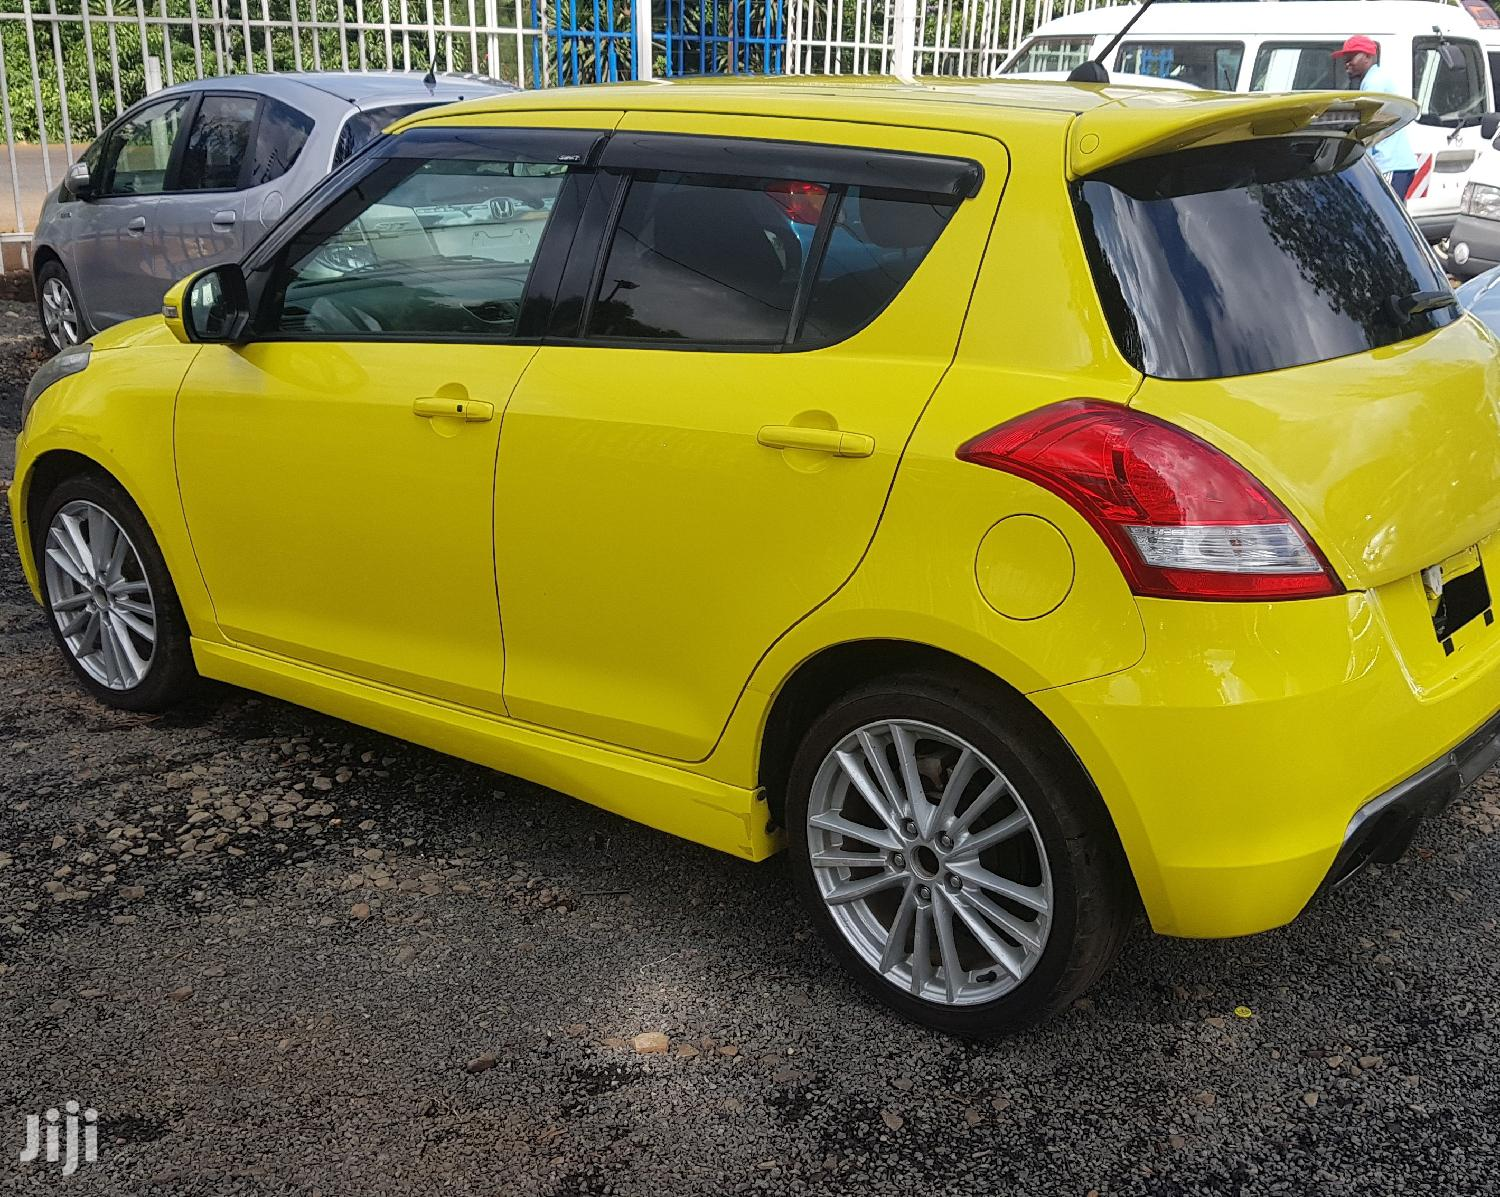 Archive: New Suzuki Swift 2013 Yellow